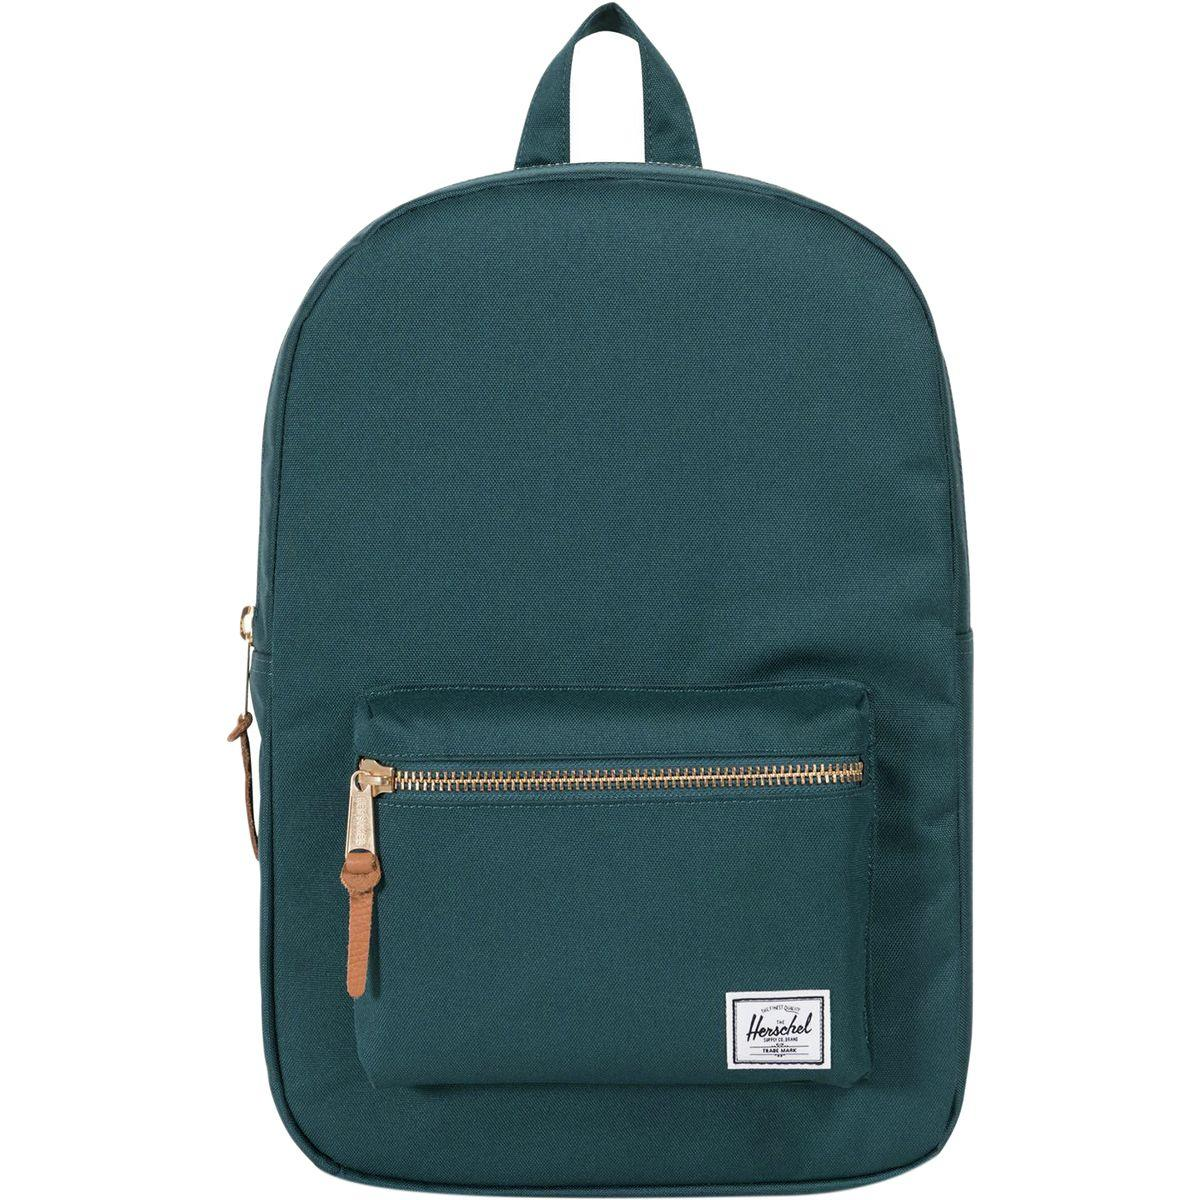 9909051d81f Latest Herschel Supply Co. Sports   Outdoors Products